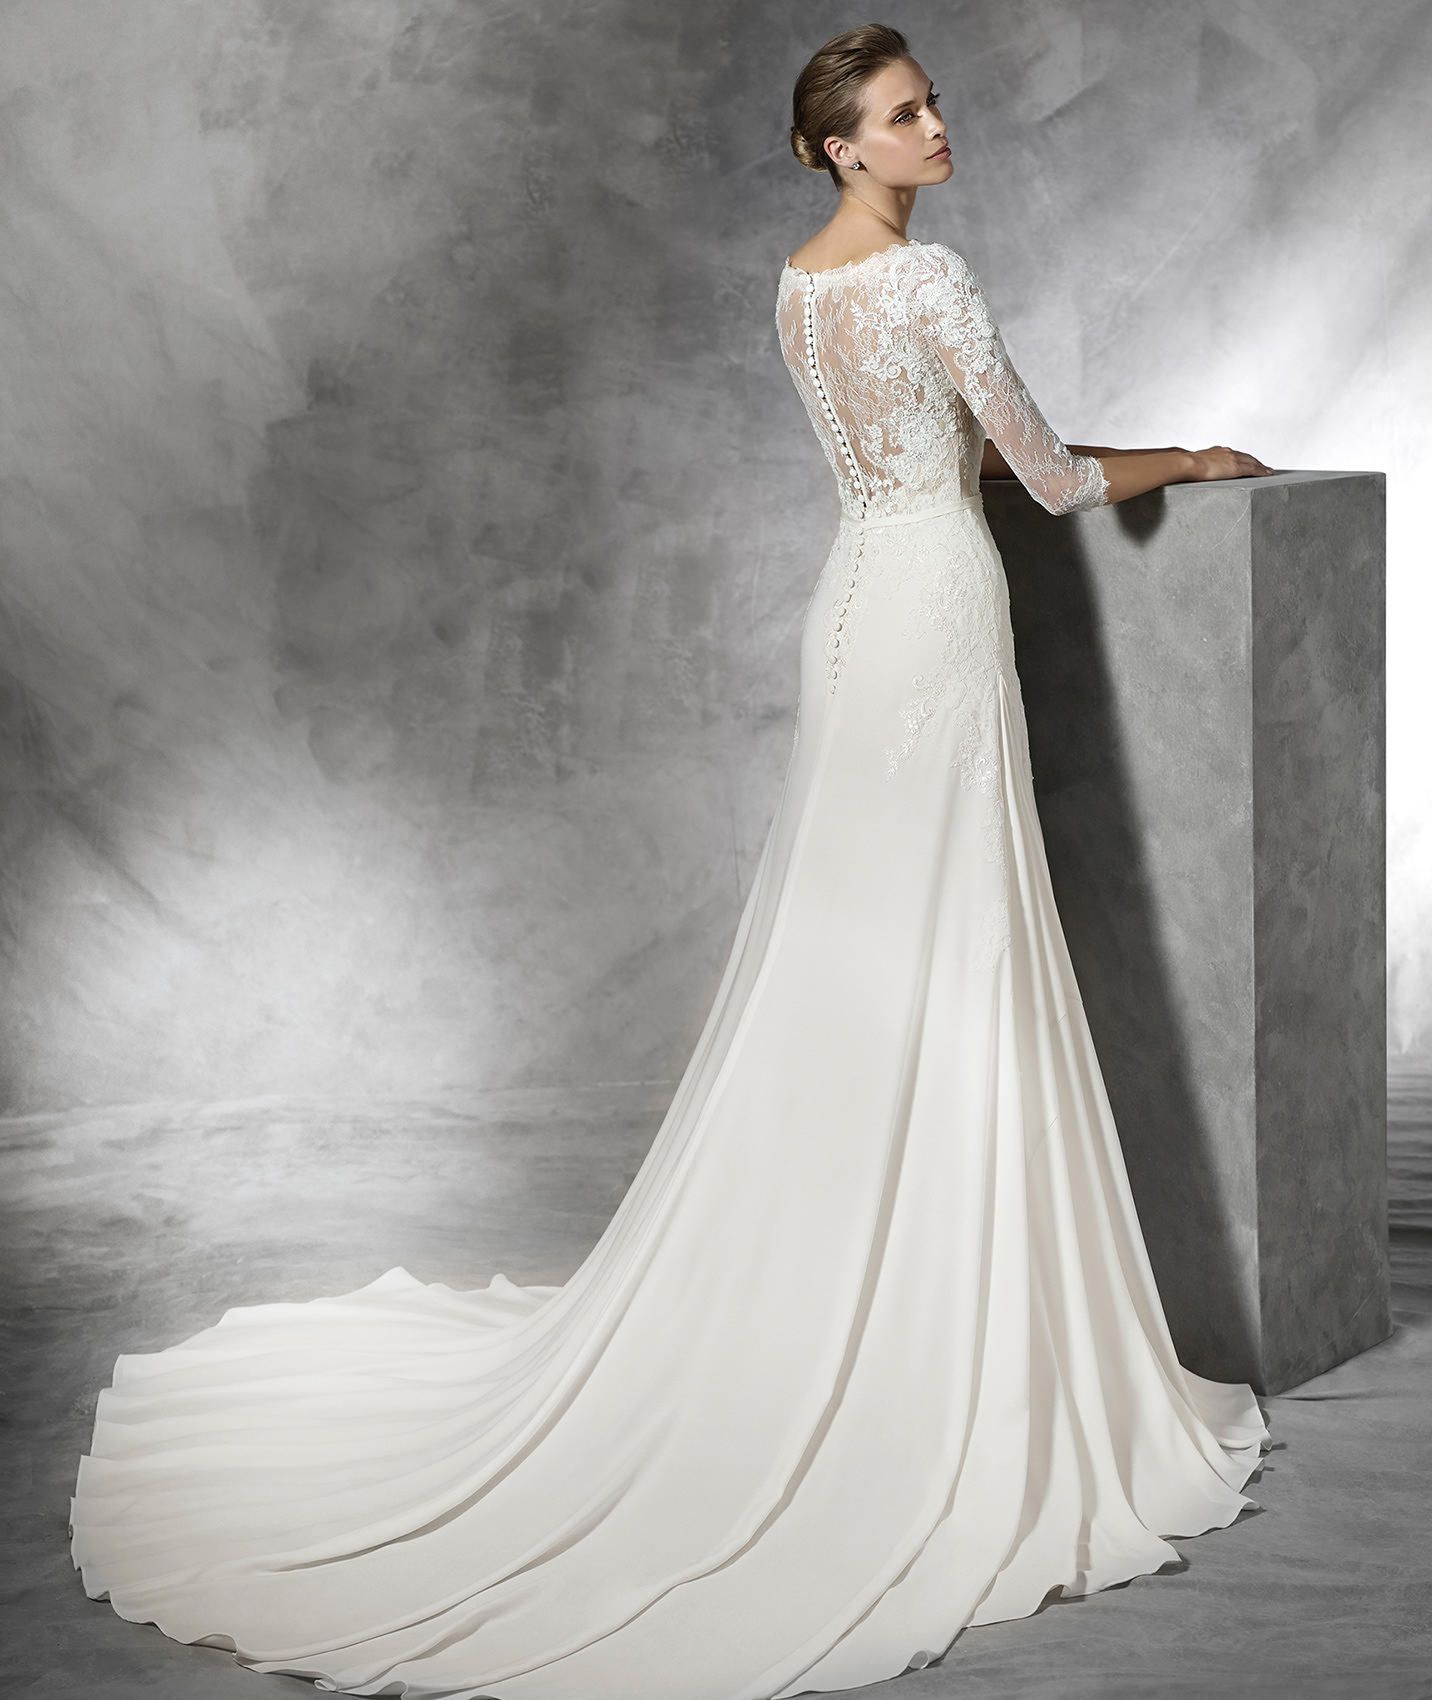 TANE colored wedding dress with lace Pronovias